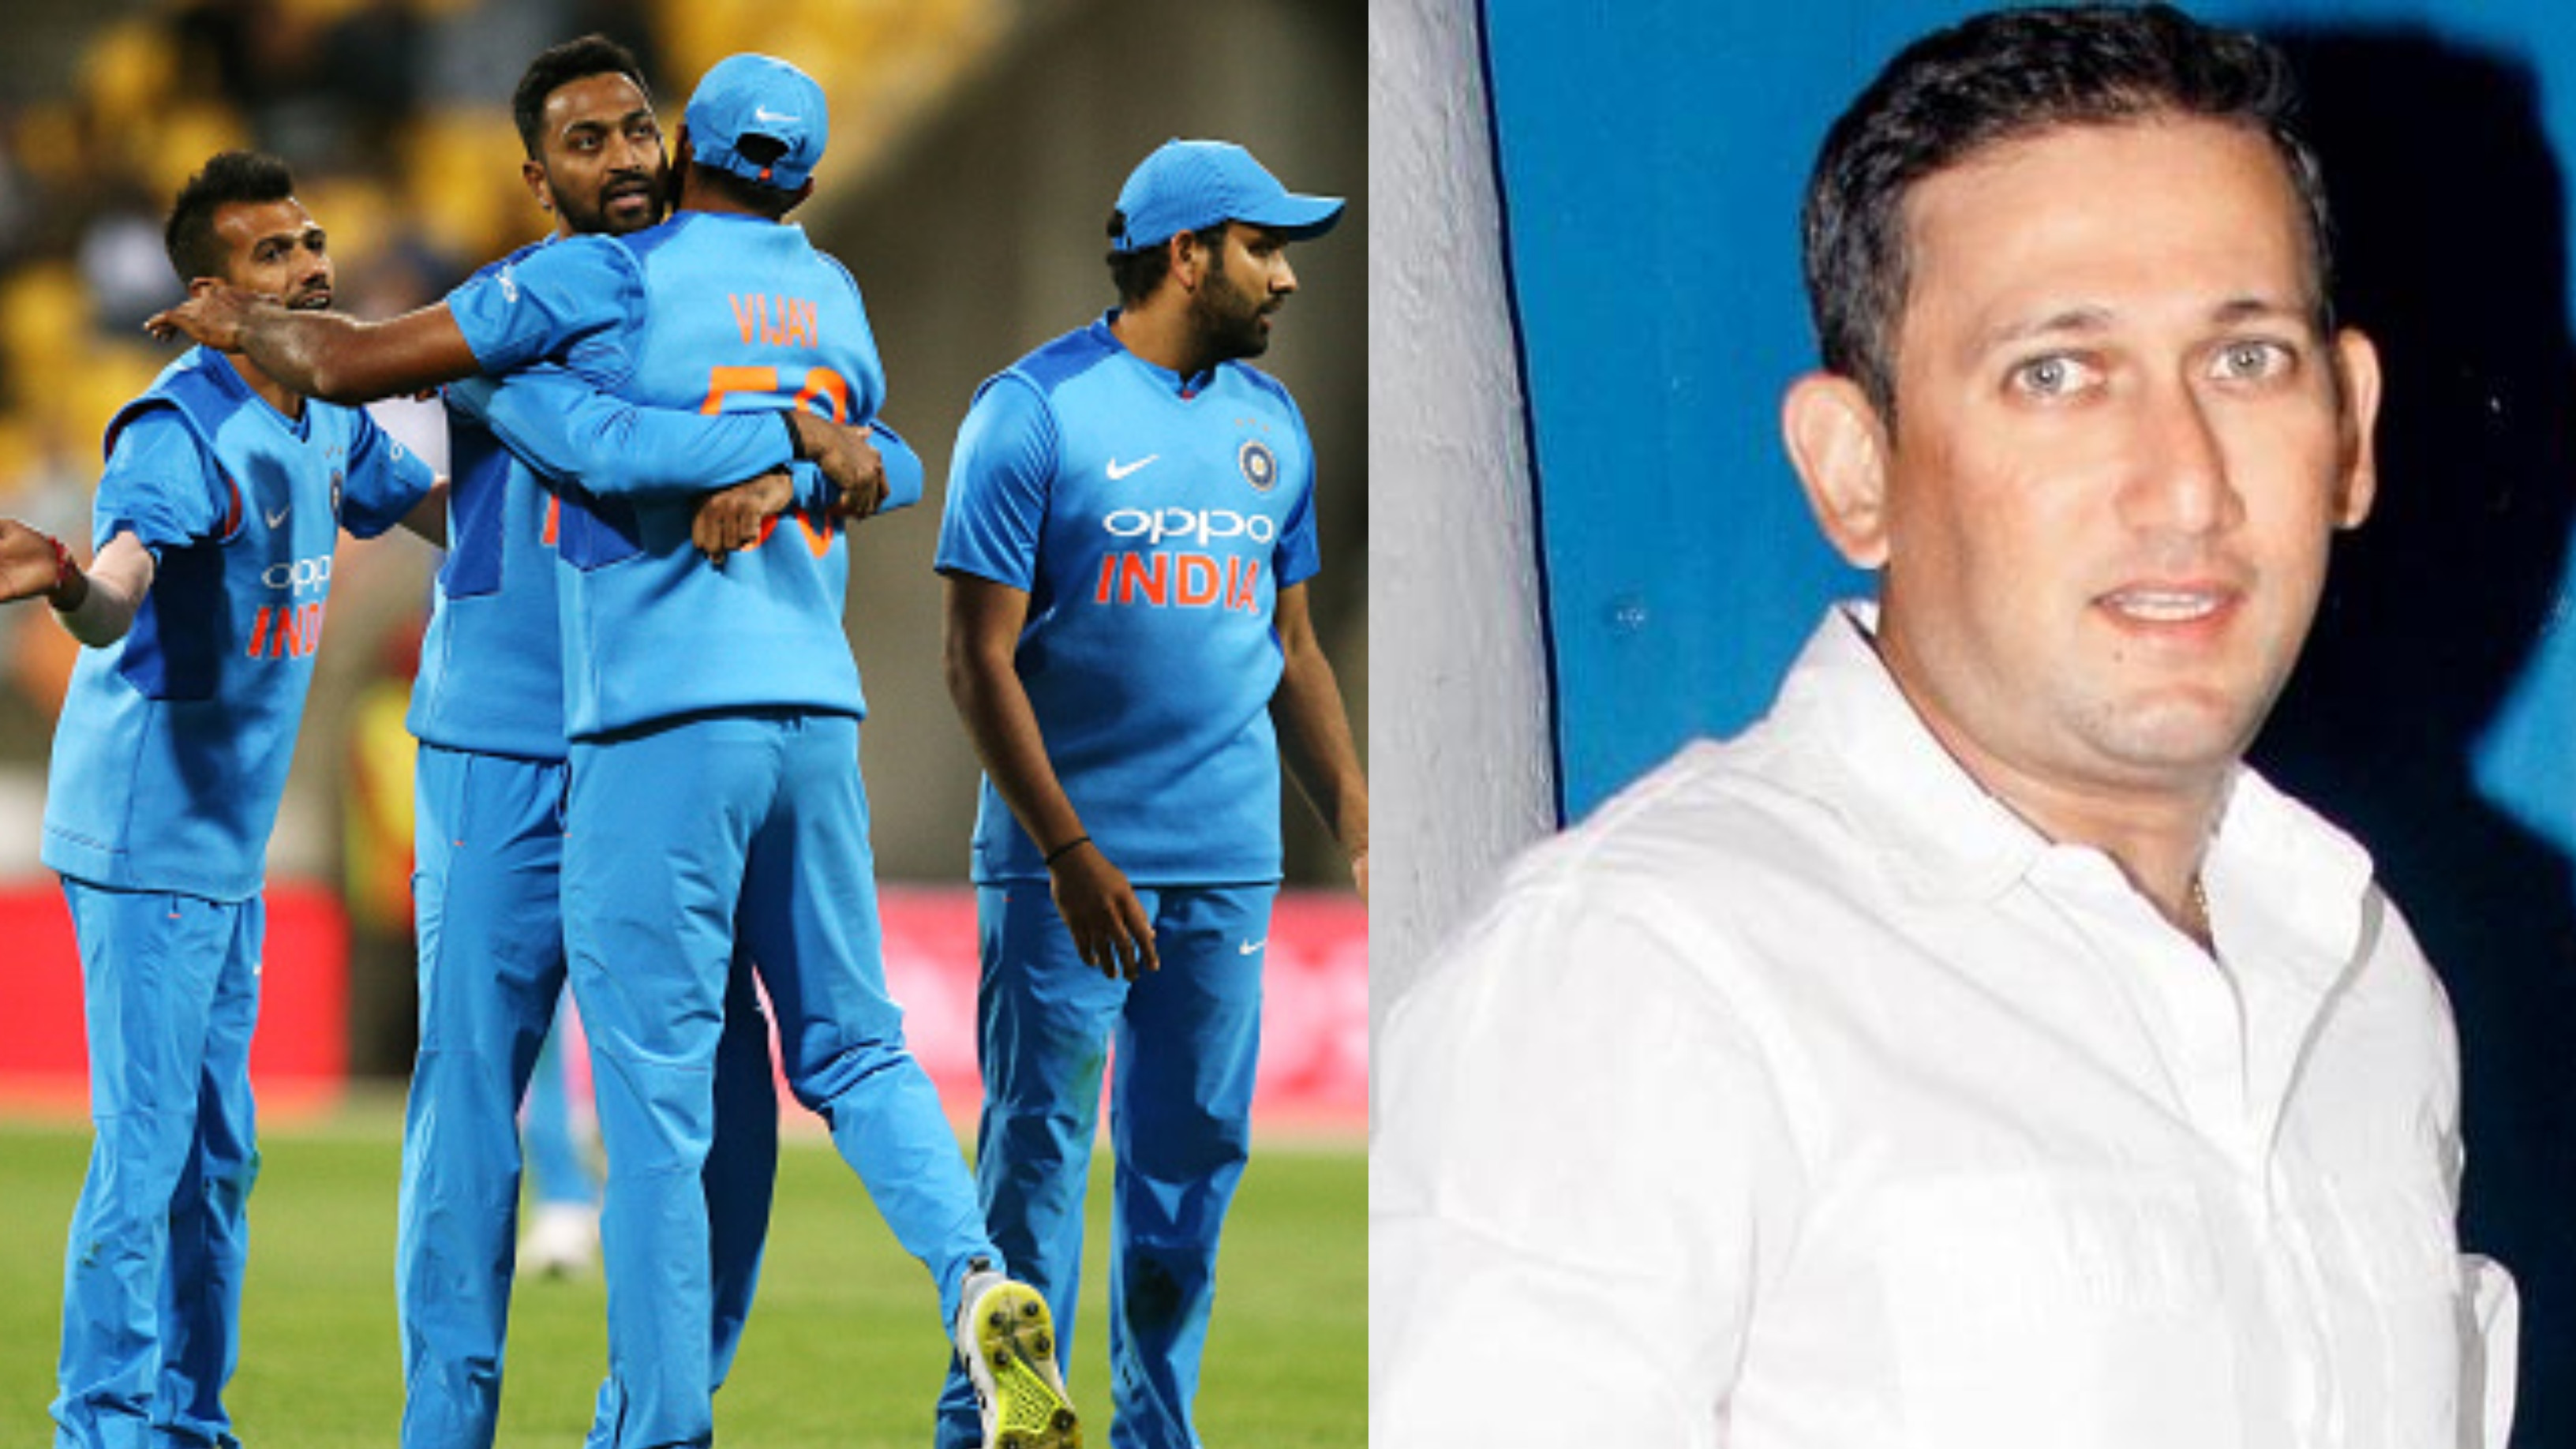 CWC 2019: Ajit Agarkar reveals his Indian playing XI for World Cup 2019 opener